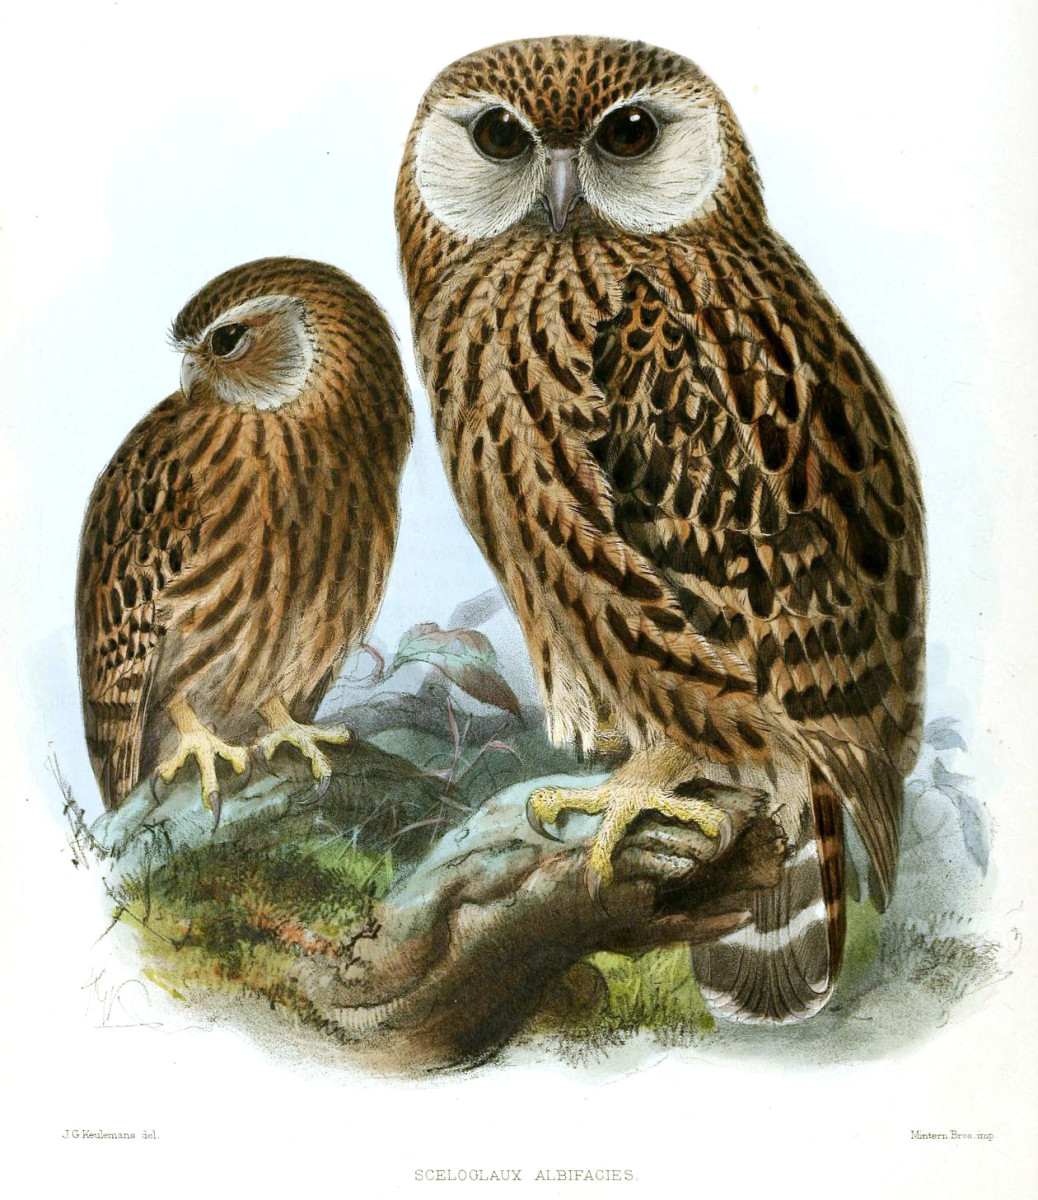 Laughing owls were named for their maniacal shrieks, which they used to communicate.